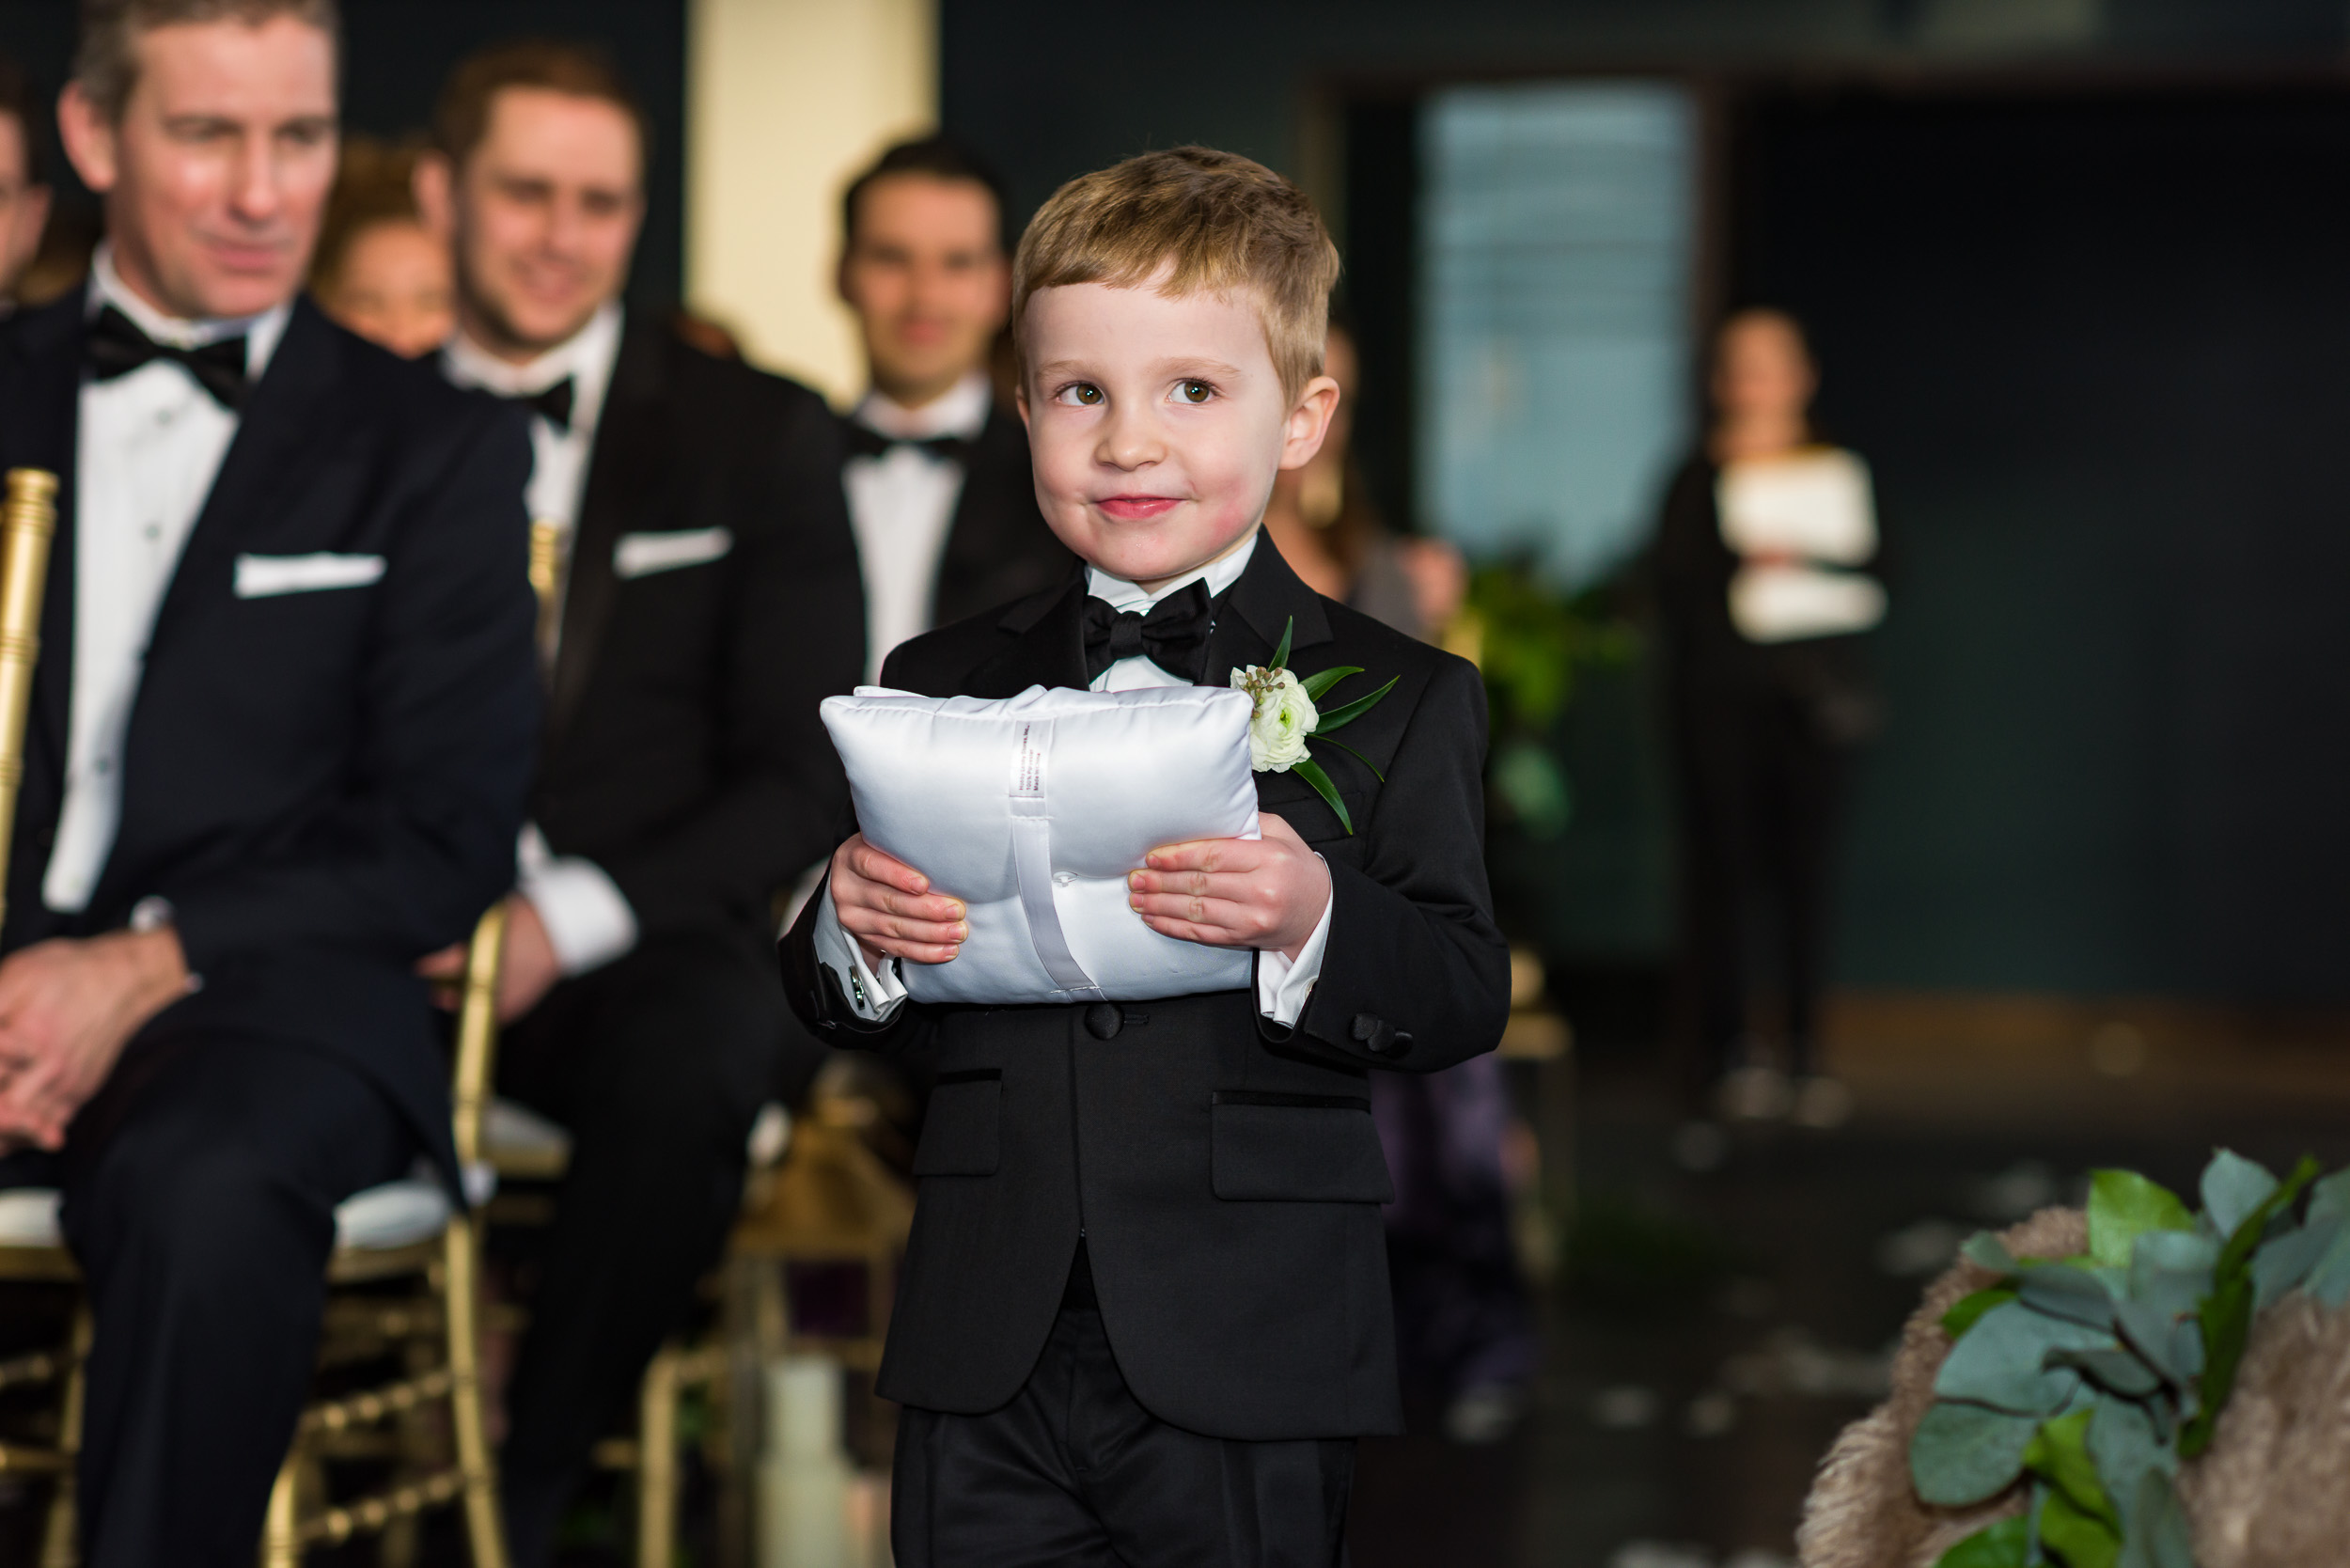 Austin-wedding-photographers-brazos-hall-downtown-ring-bearer-tuxedo-cute